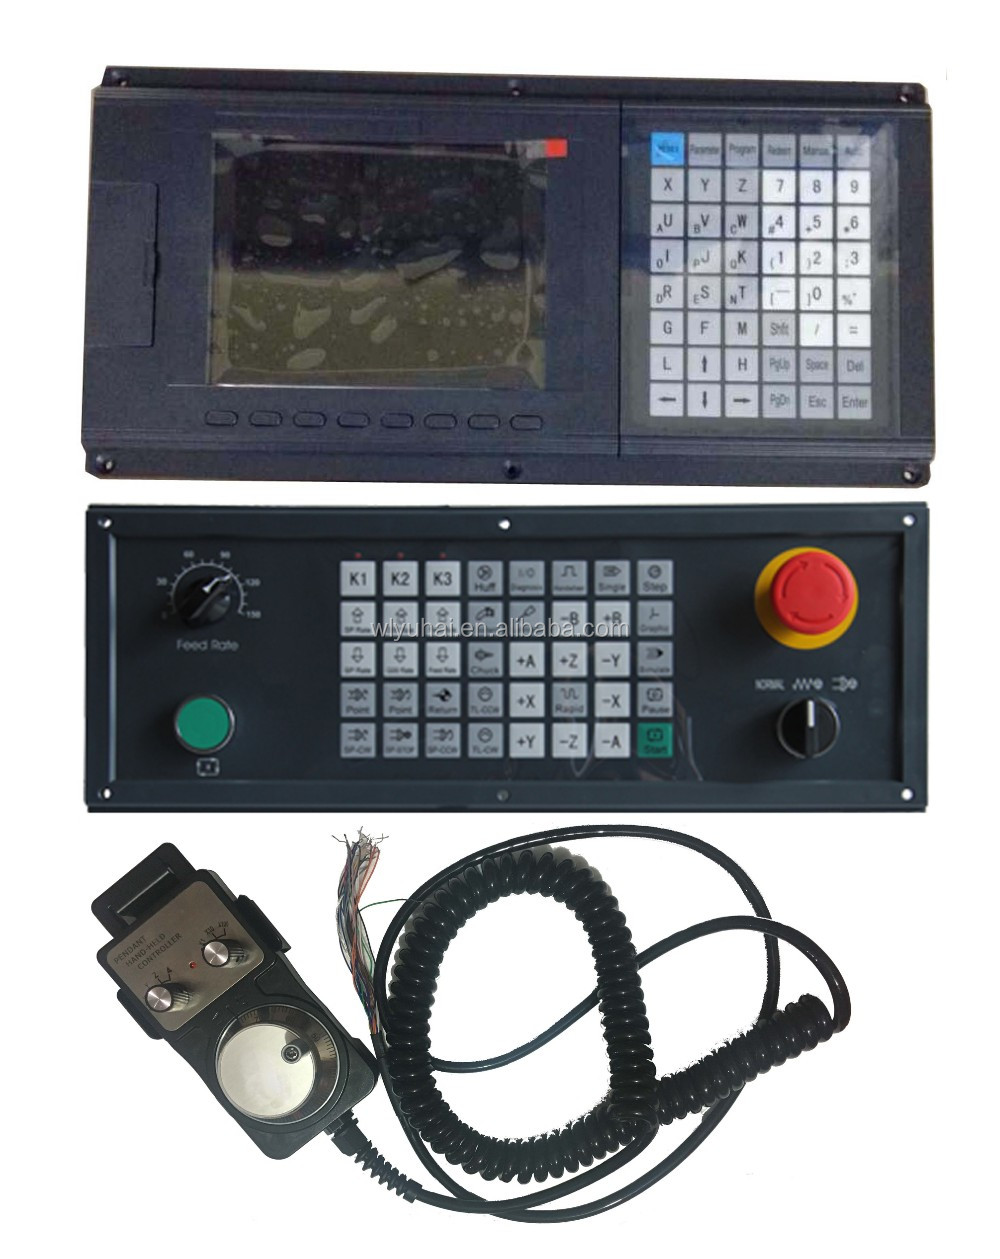 big vice panel 3 axis milling cnc controller price